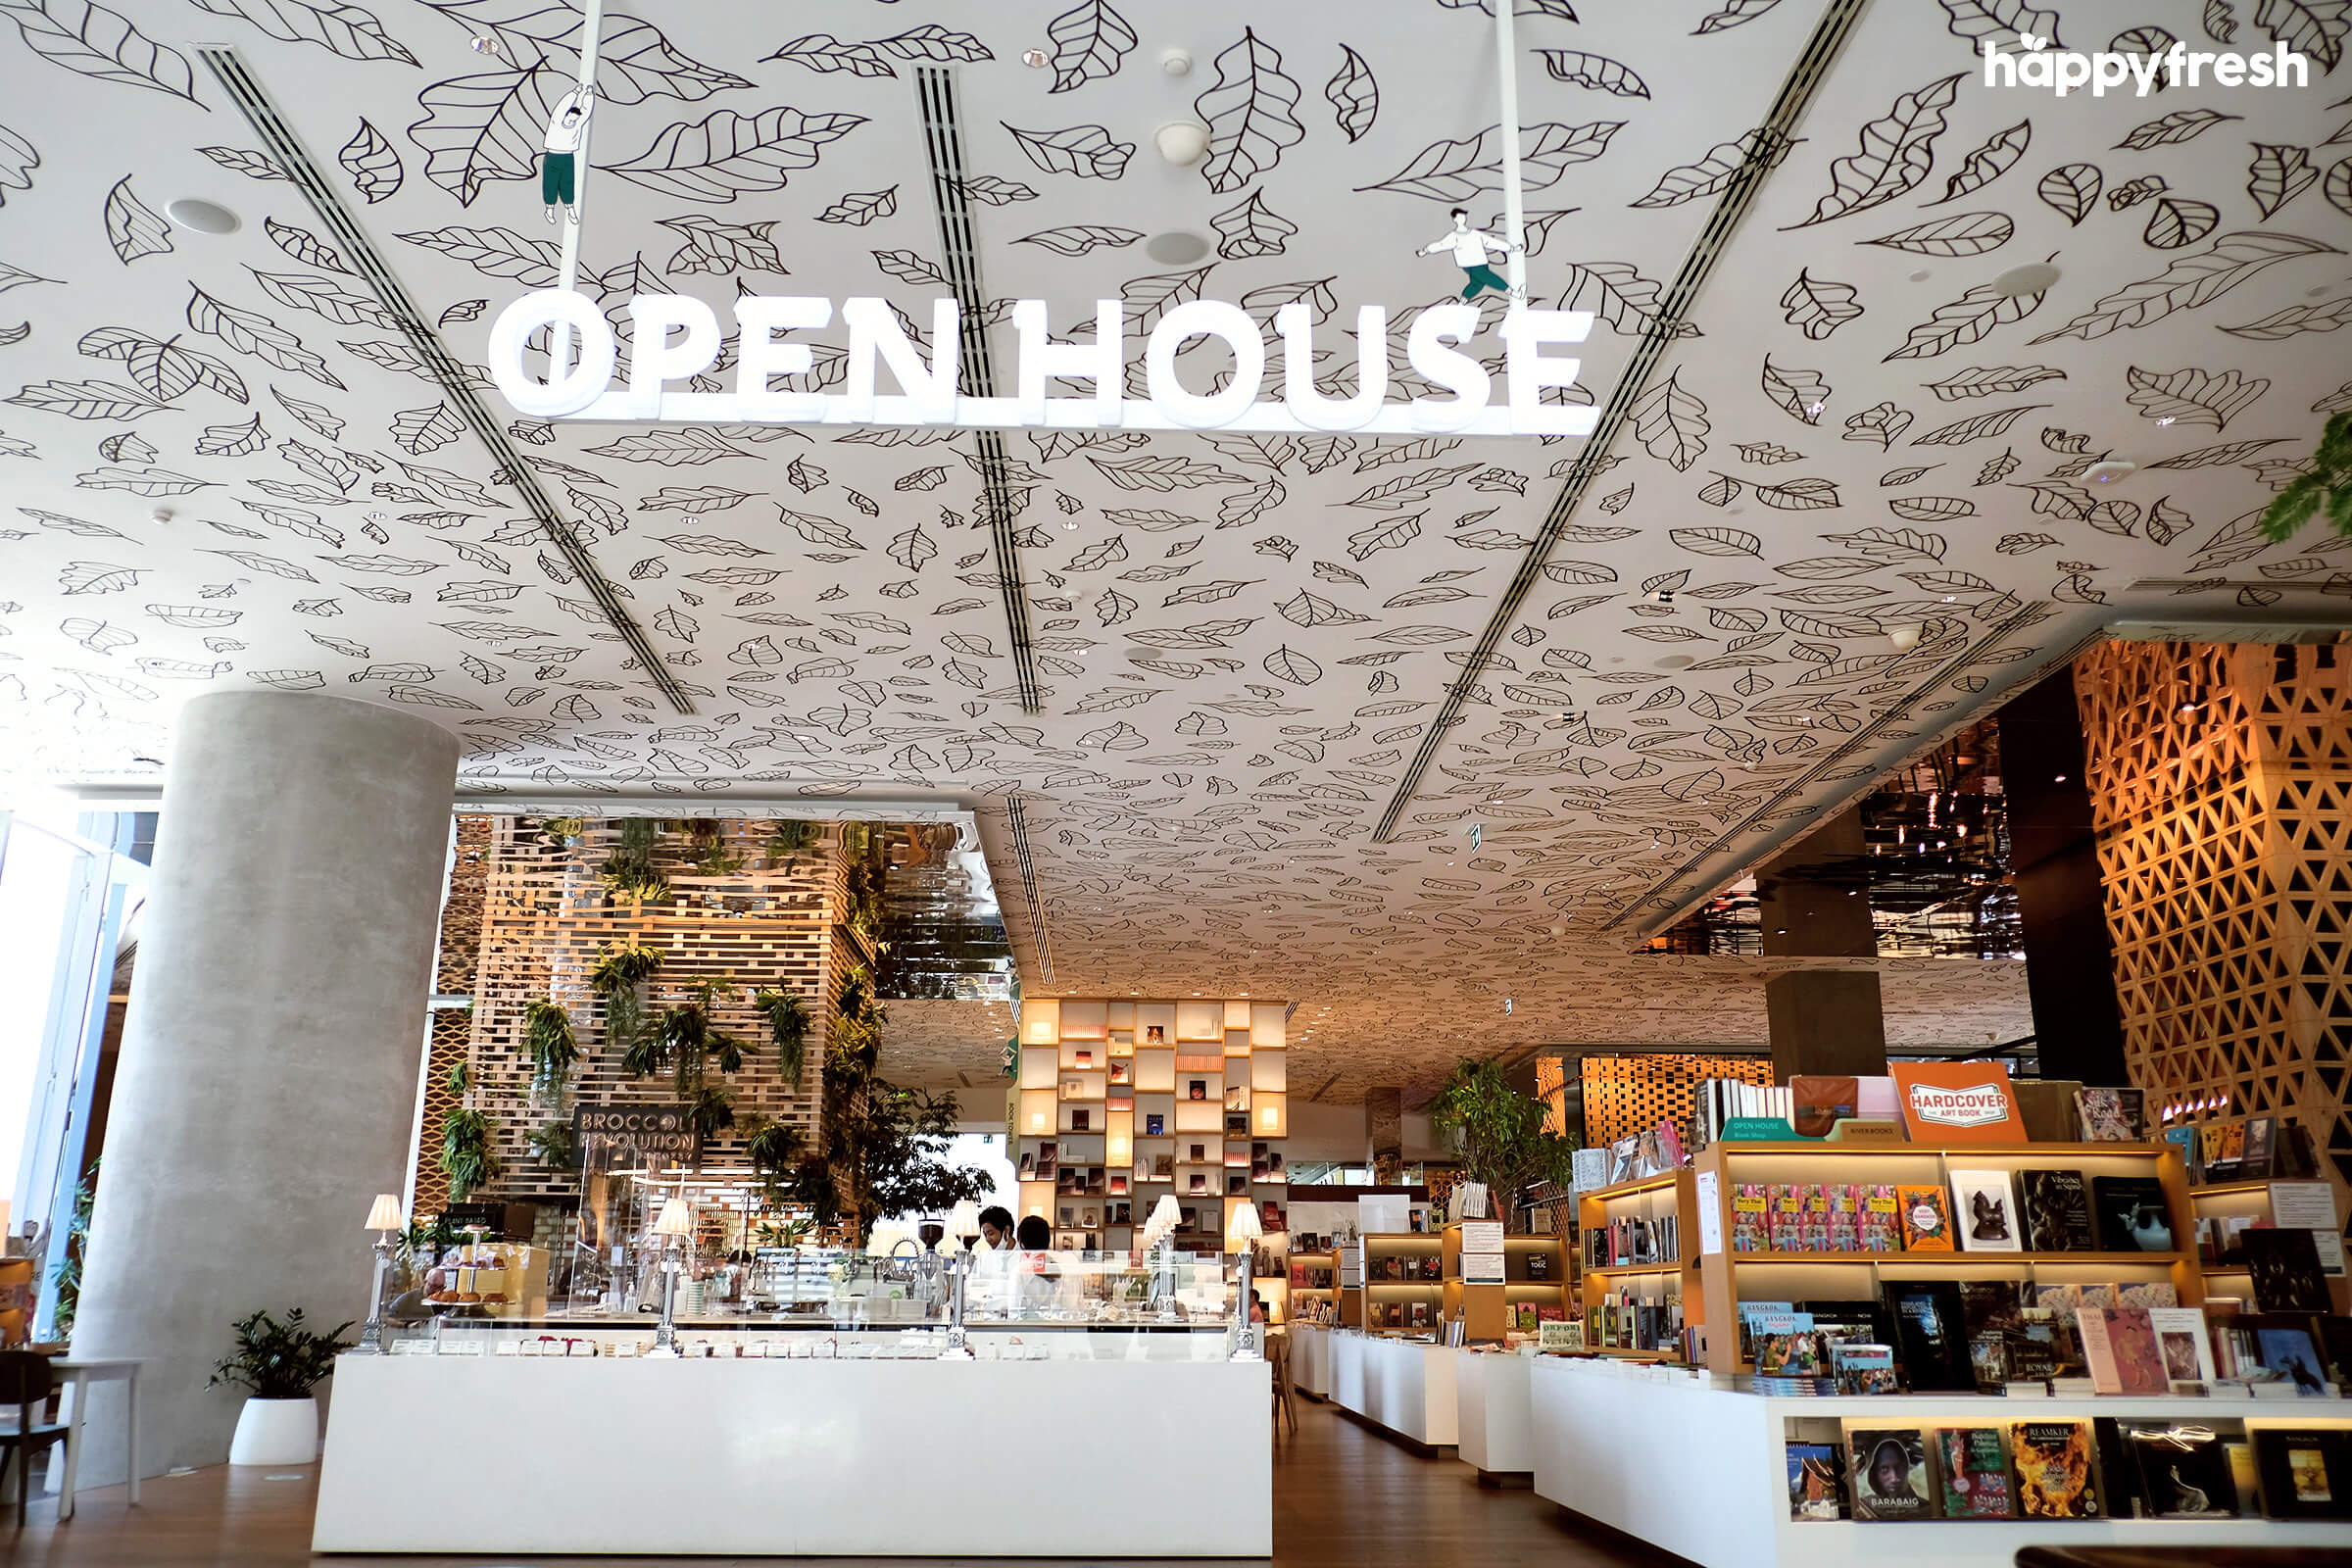 HappyFresh_Review_5_Cafes_Bookstores_In_Open_House